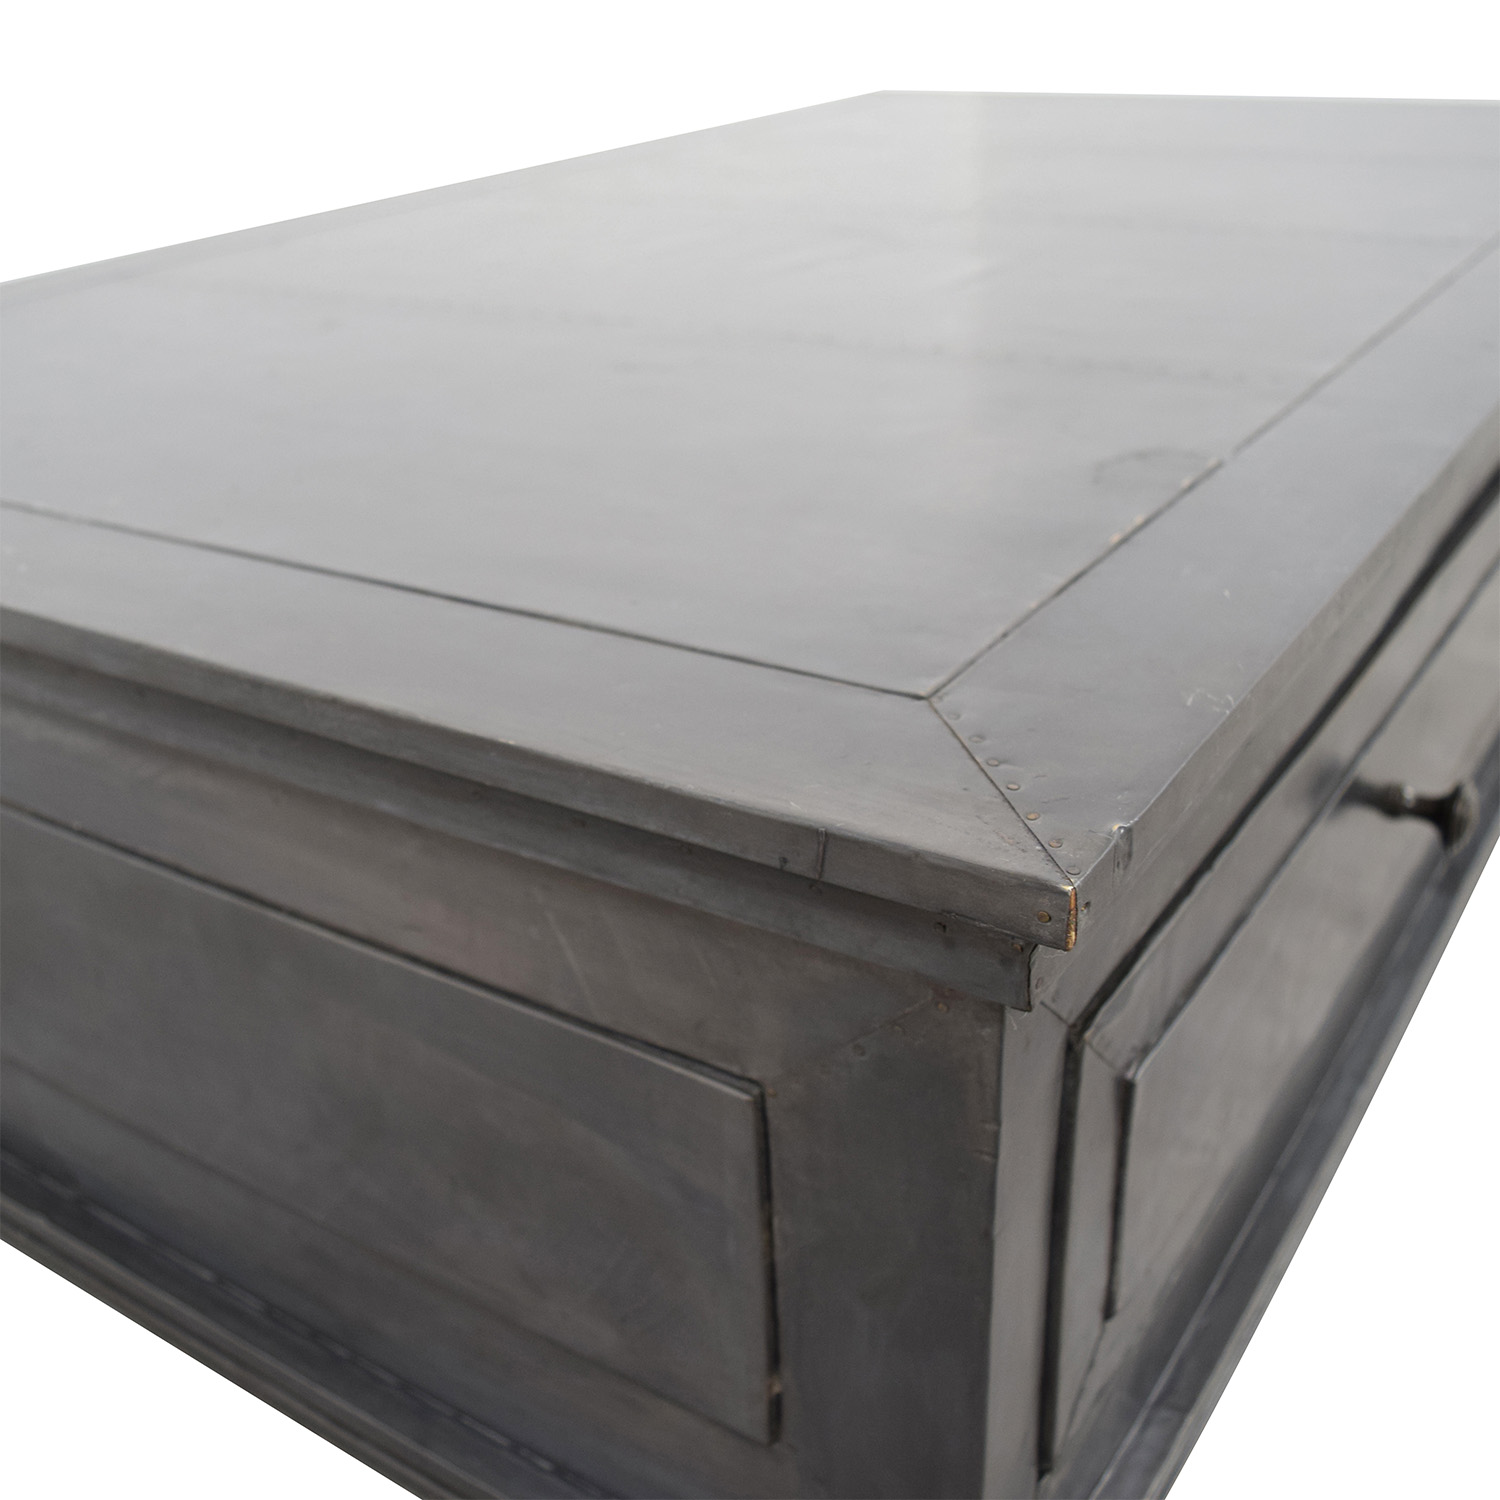 Miraculous 81 Off Restoration Hardware Restoration Hardware Annecy Metal Wrapped Coffee Table Tables Bralicious Painted Fabric Chair Ideas Braliciousco